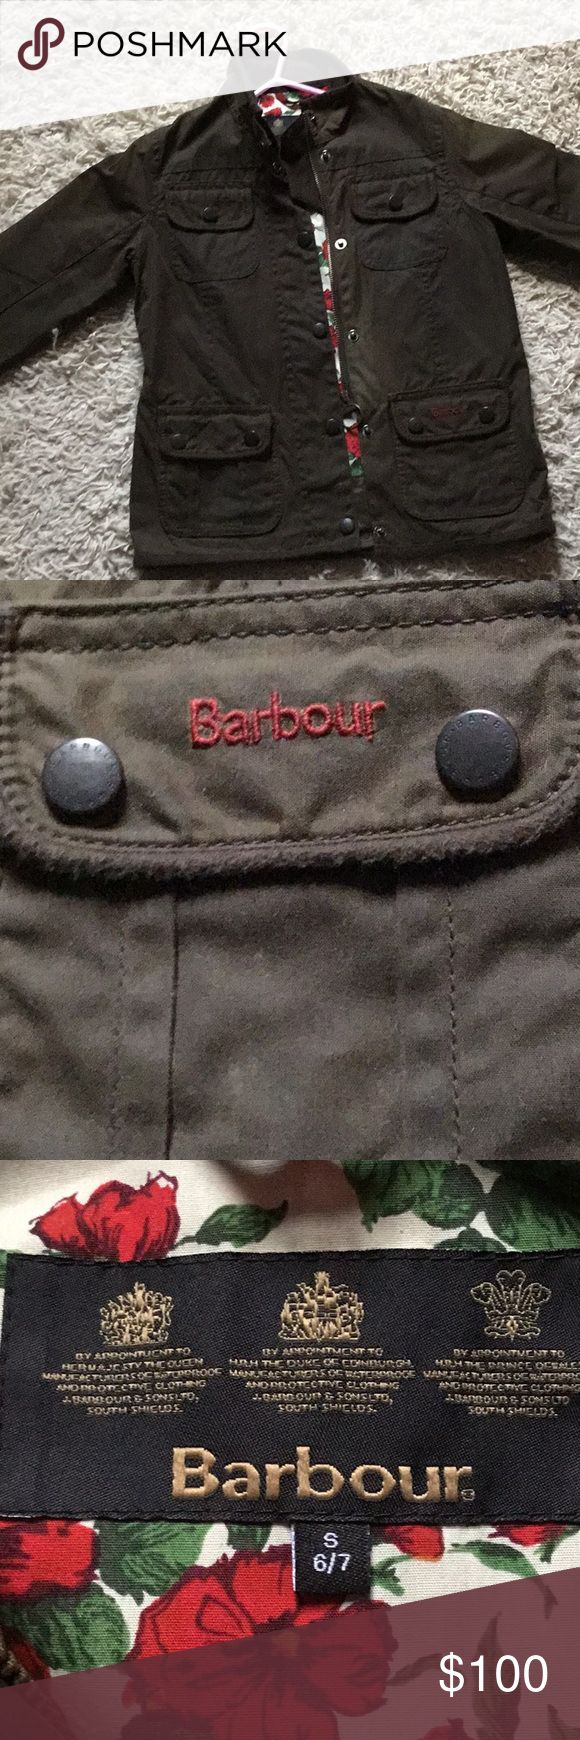 Barbour waxed cotton jacket Cute girls Barbour jacket. Great condition. Smoke free. Pet free home. Barbour Jackets & Coats Blazers